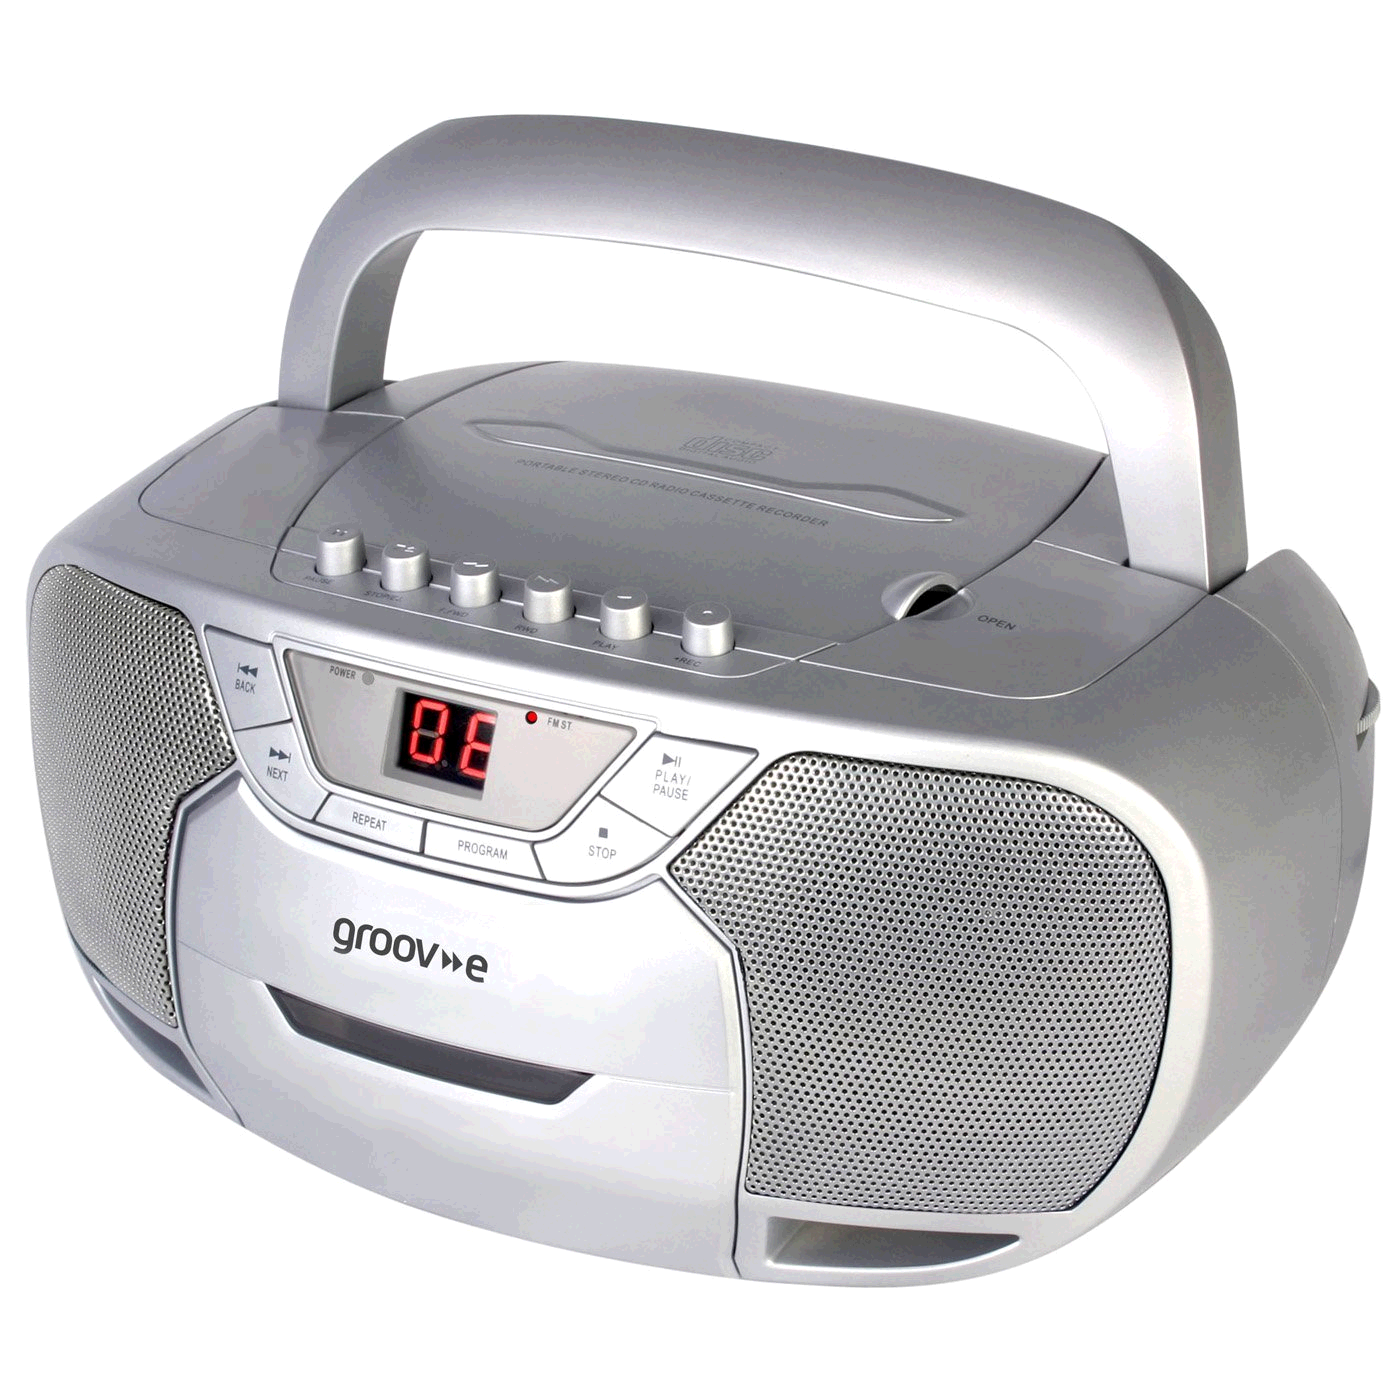 Groove GVPS823 Groov-e Classic Boombox Portable CD Player with Cassette & Radio Silver